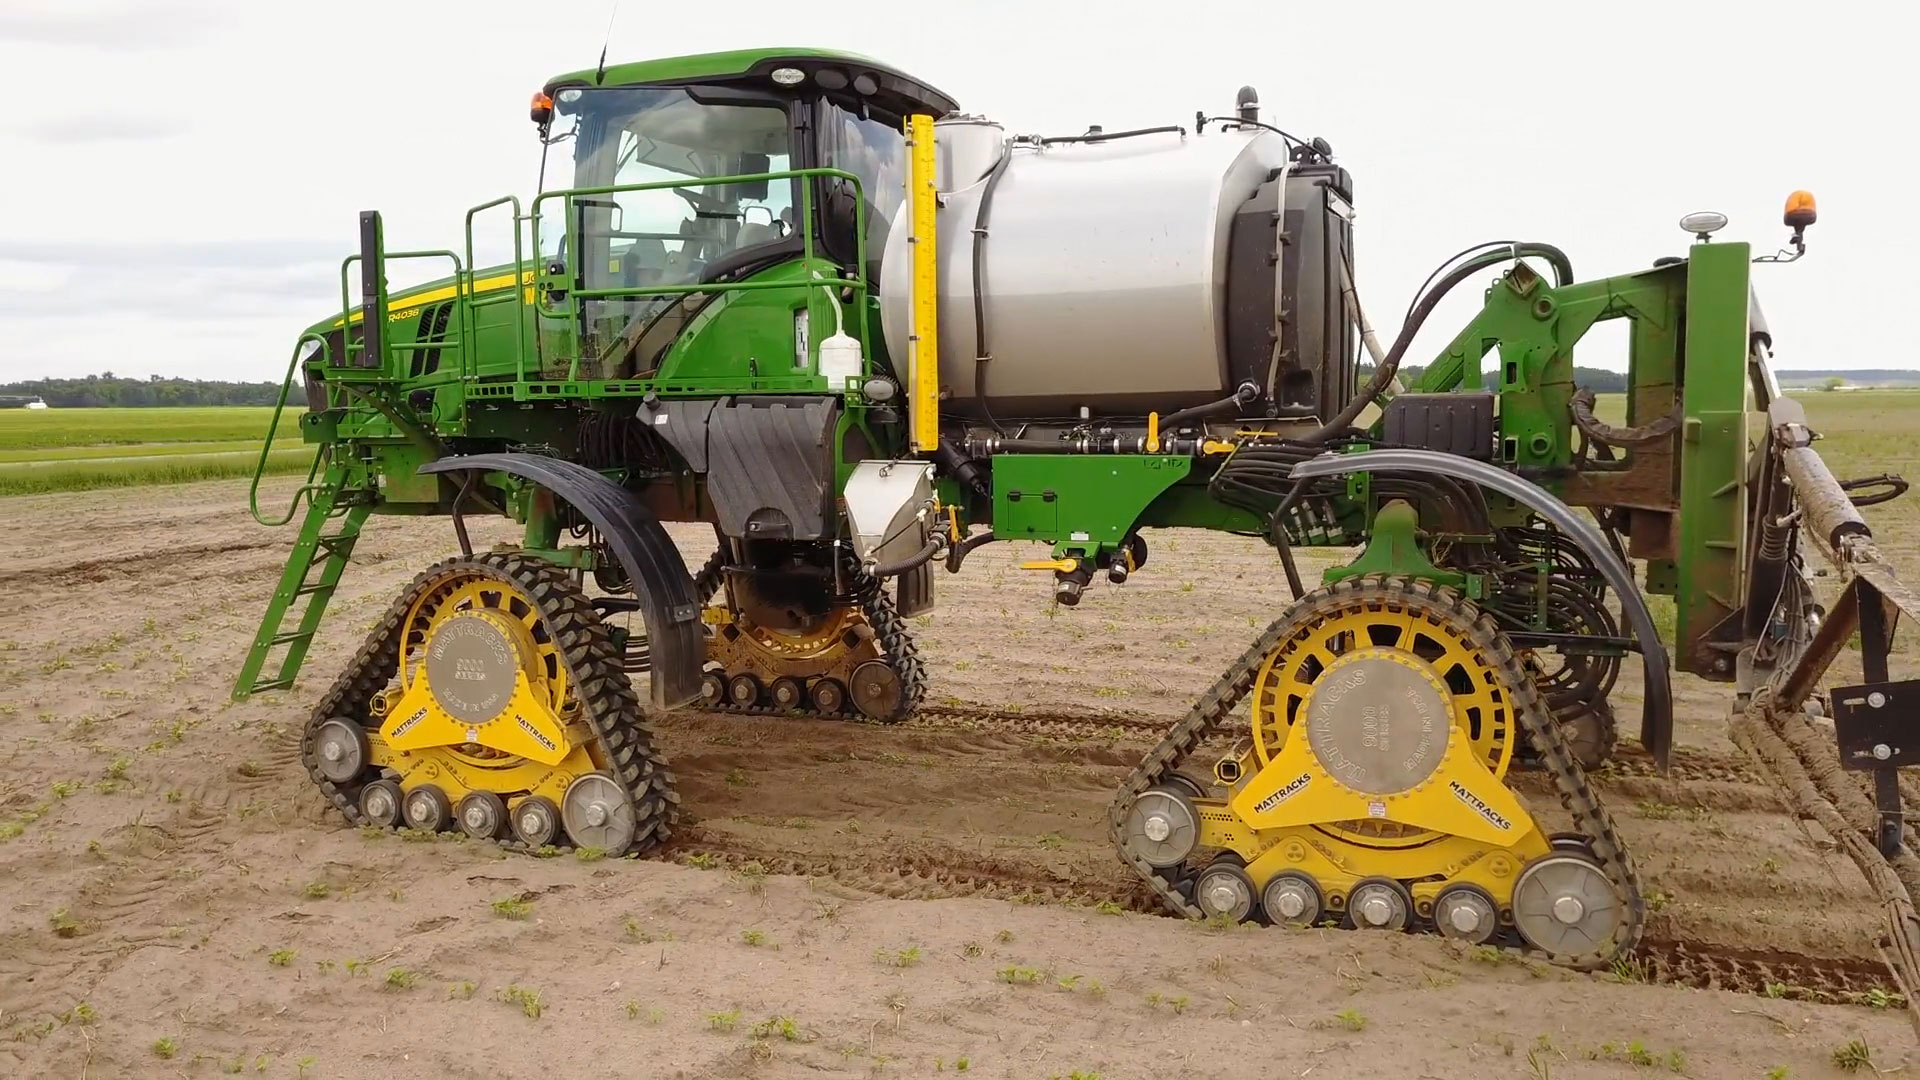 9090-AA Series Tracks on a John Deere R4038